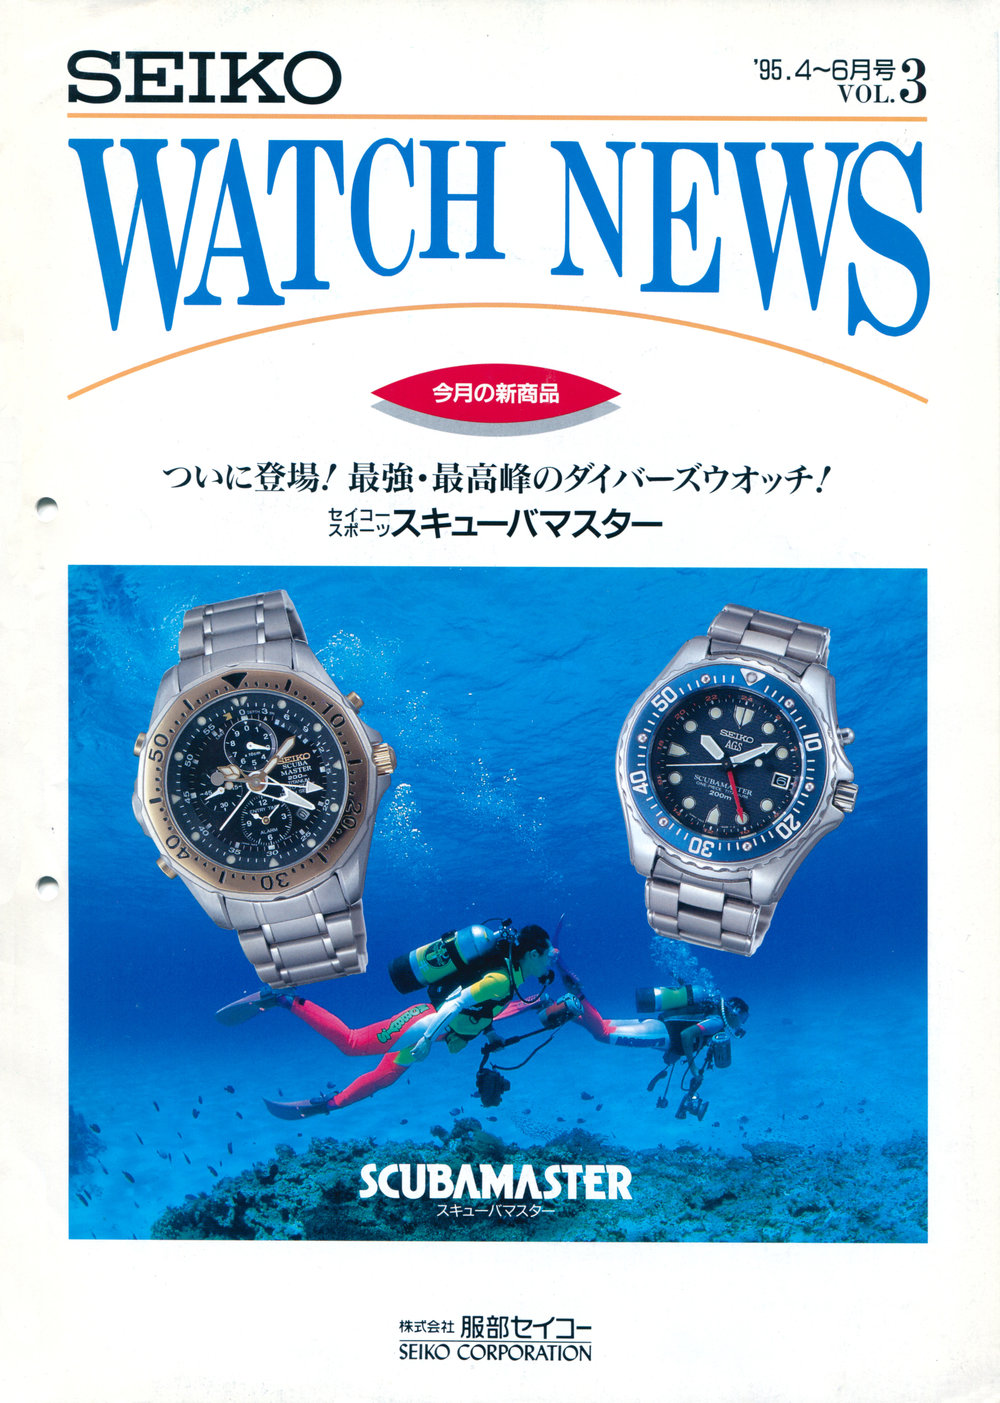 Seiko News 1995-4 Vol. 3